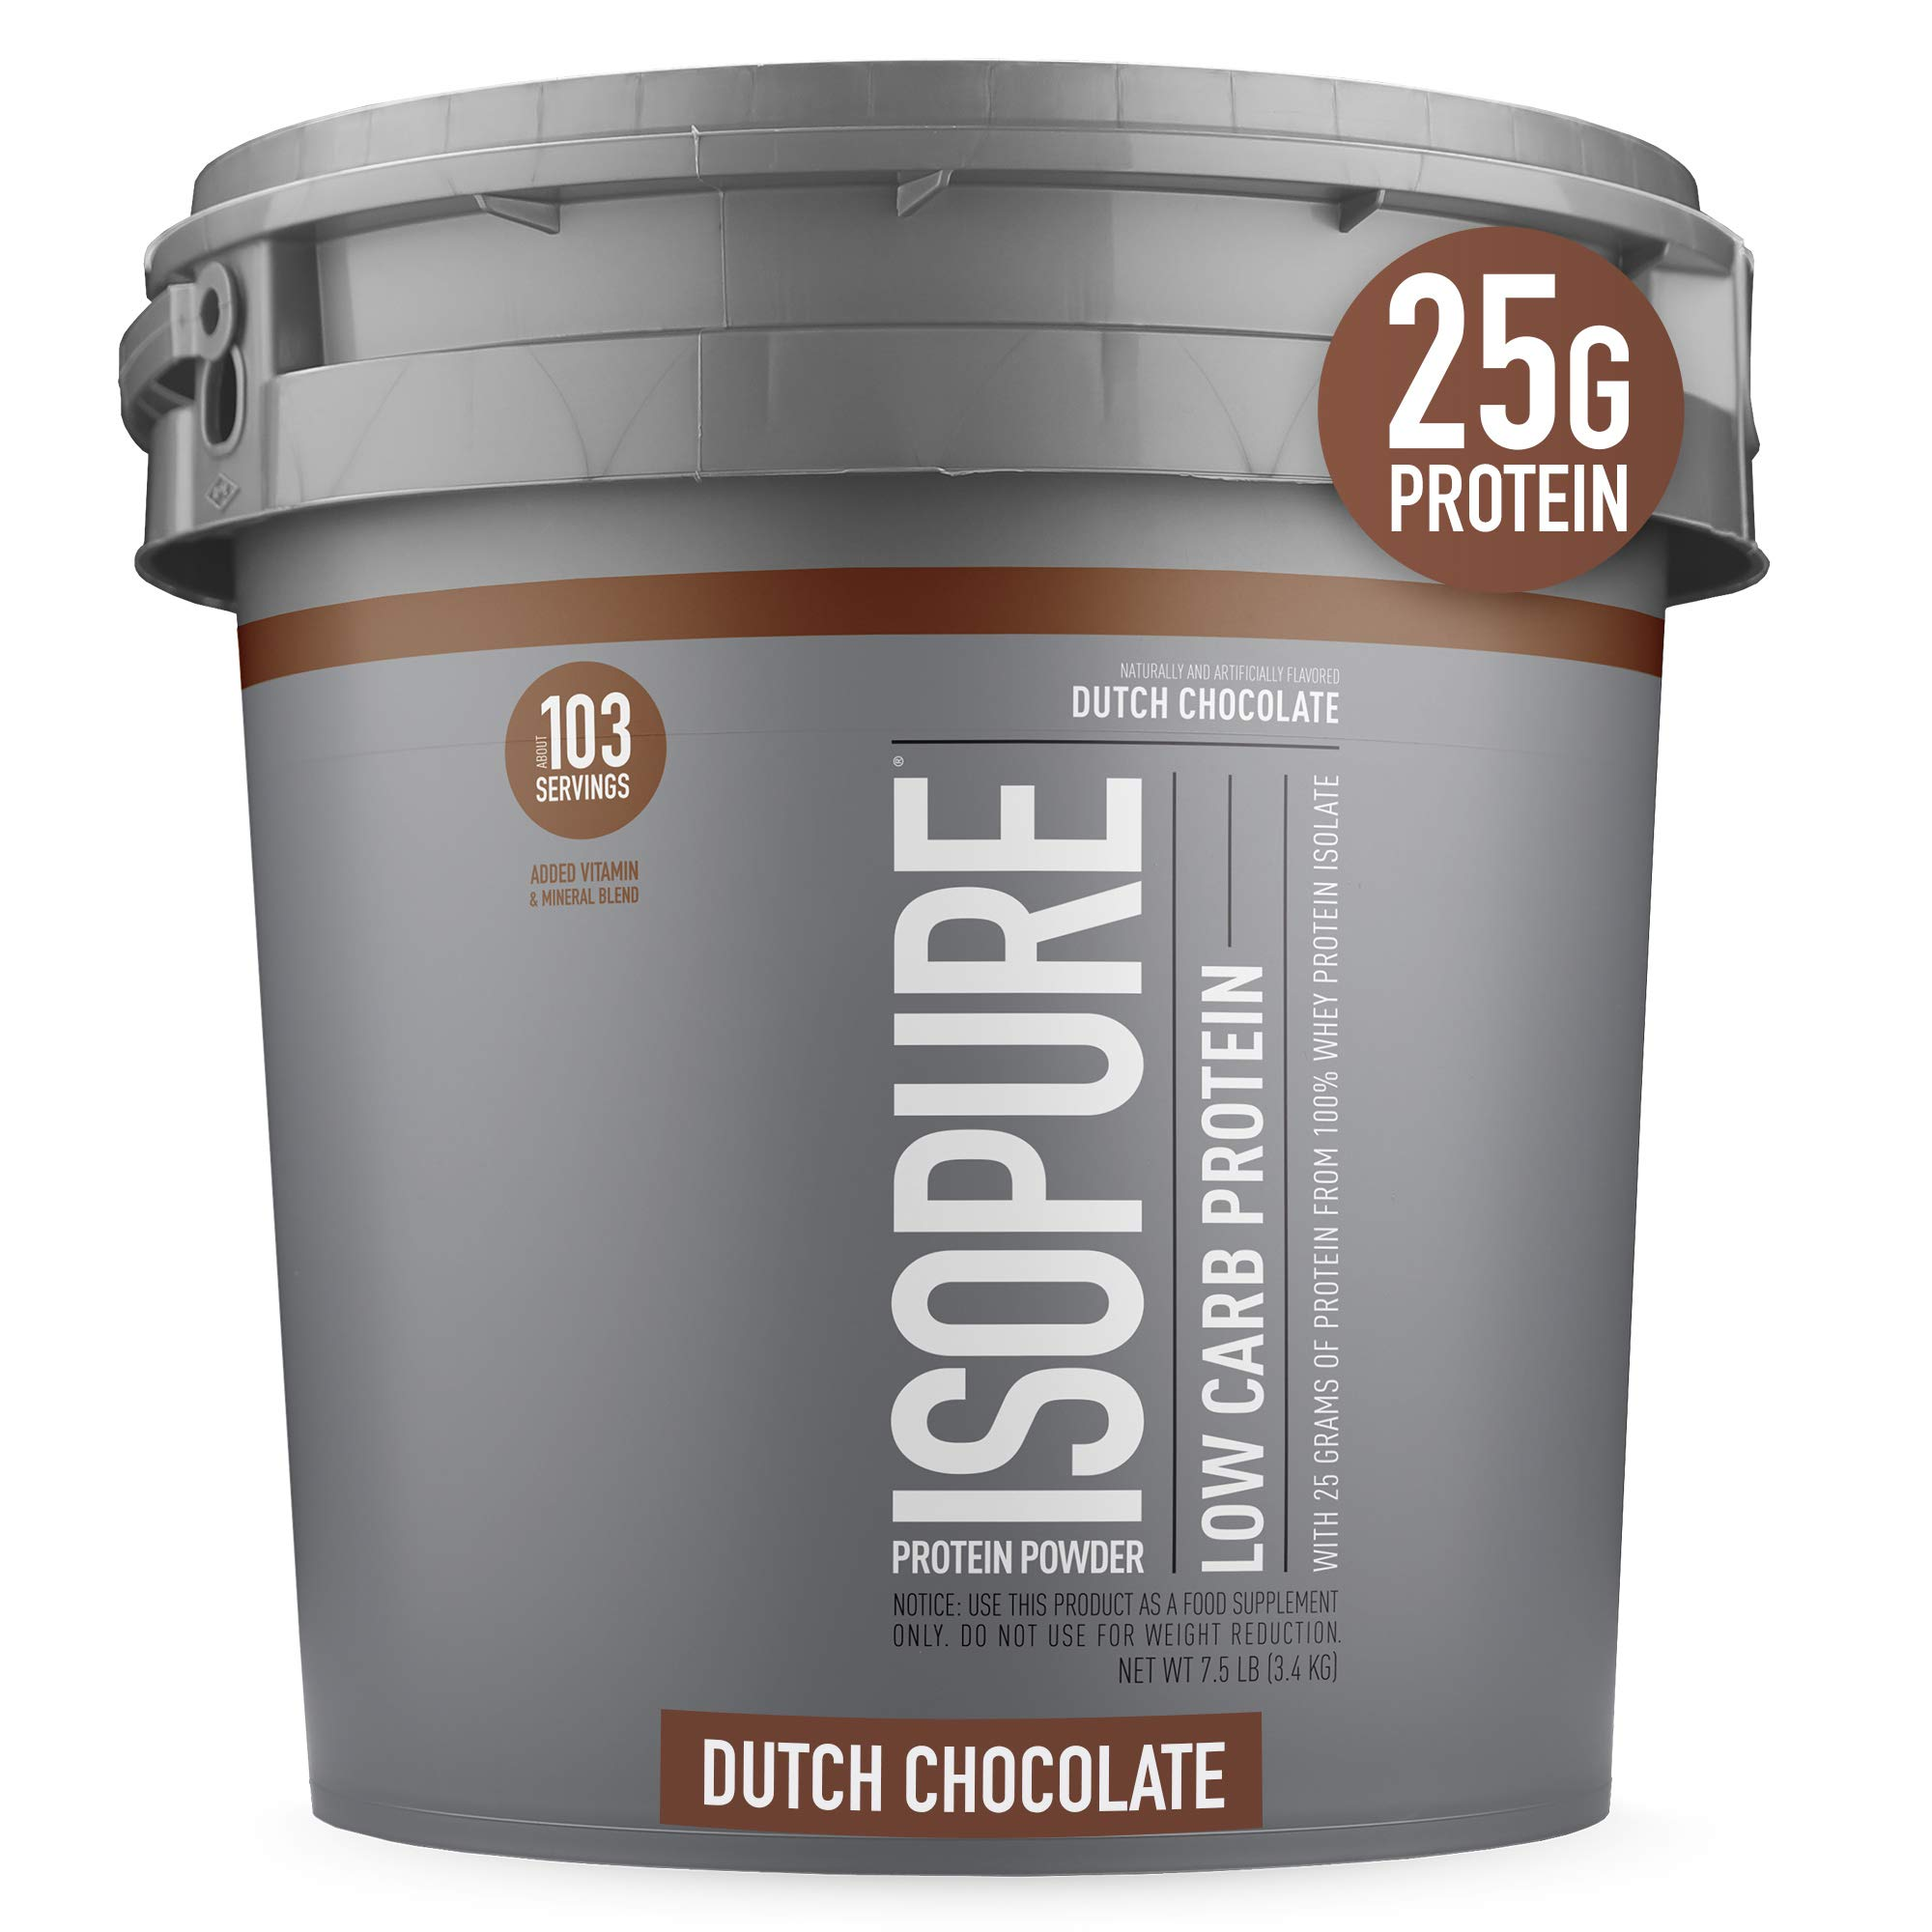 Isopure Low Carb, Vitamin C and Zinc for Immune Support, 25g Protein, Keto Friendly Protein Powder, 100% Whey Protein Isolate, Flavor: Dutch Chocolate, 7.5 Pounds (Packaging May Vary)